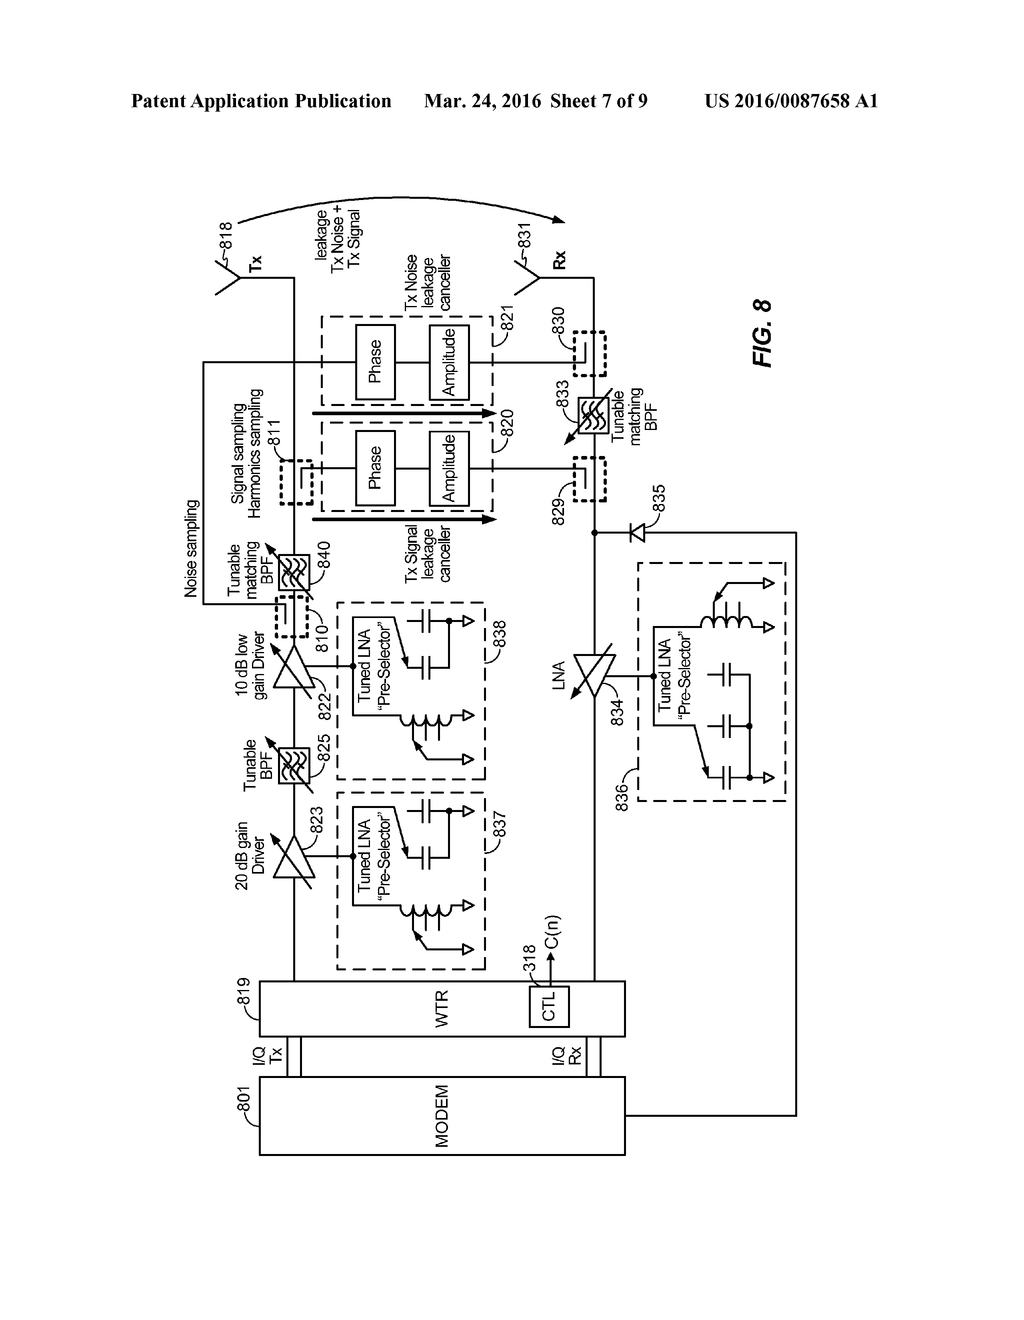 NOISE CANCELER FOR USE IN A TRANSCEIVER - diagram, schematic ... on bridge schematic, rs-232 schematic, sensor schematic, server schematic, mouse schematic, motor schematic, multiplexer schematic, cpu schematic, power schematic, balun schematic, camera schematic, modem schematic, audio schematic, rf probe schematic,